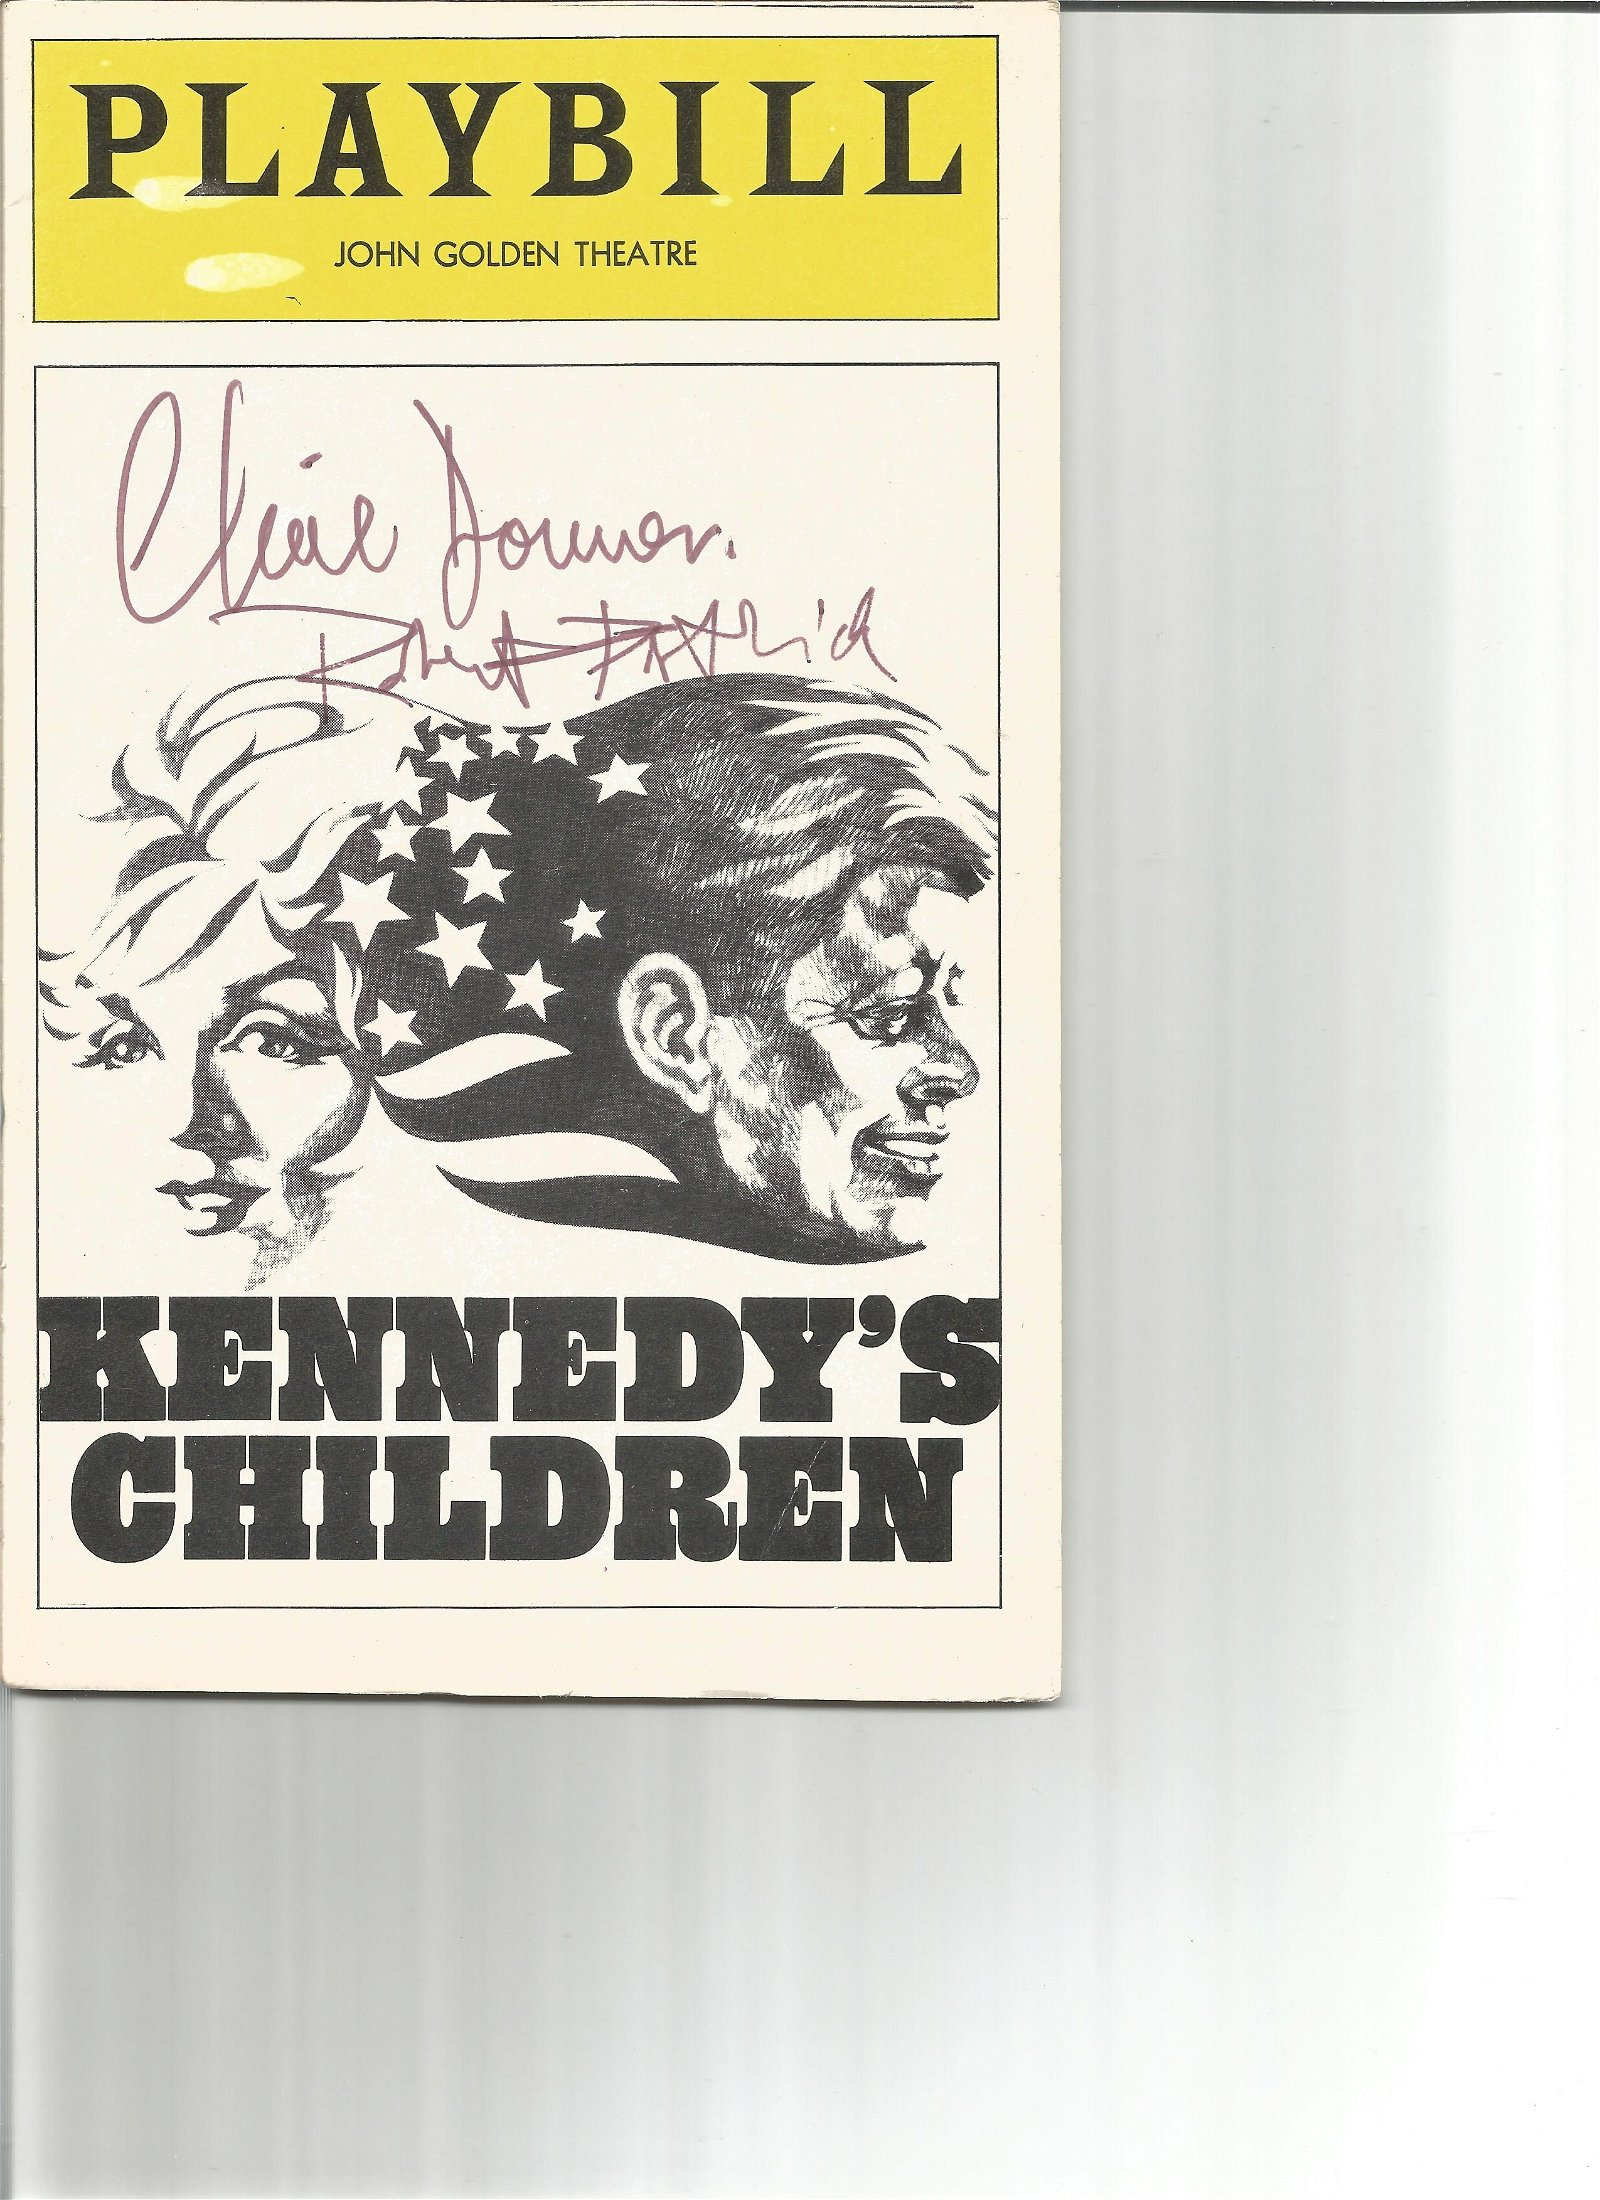 Claire Dommer and Robert Patrick signed Playbill